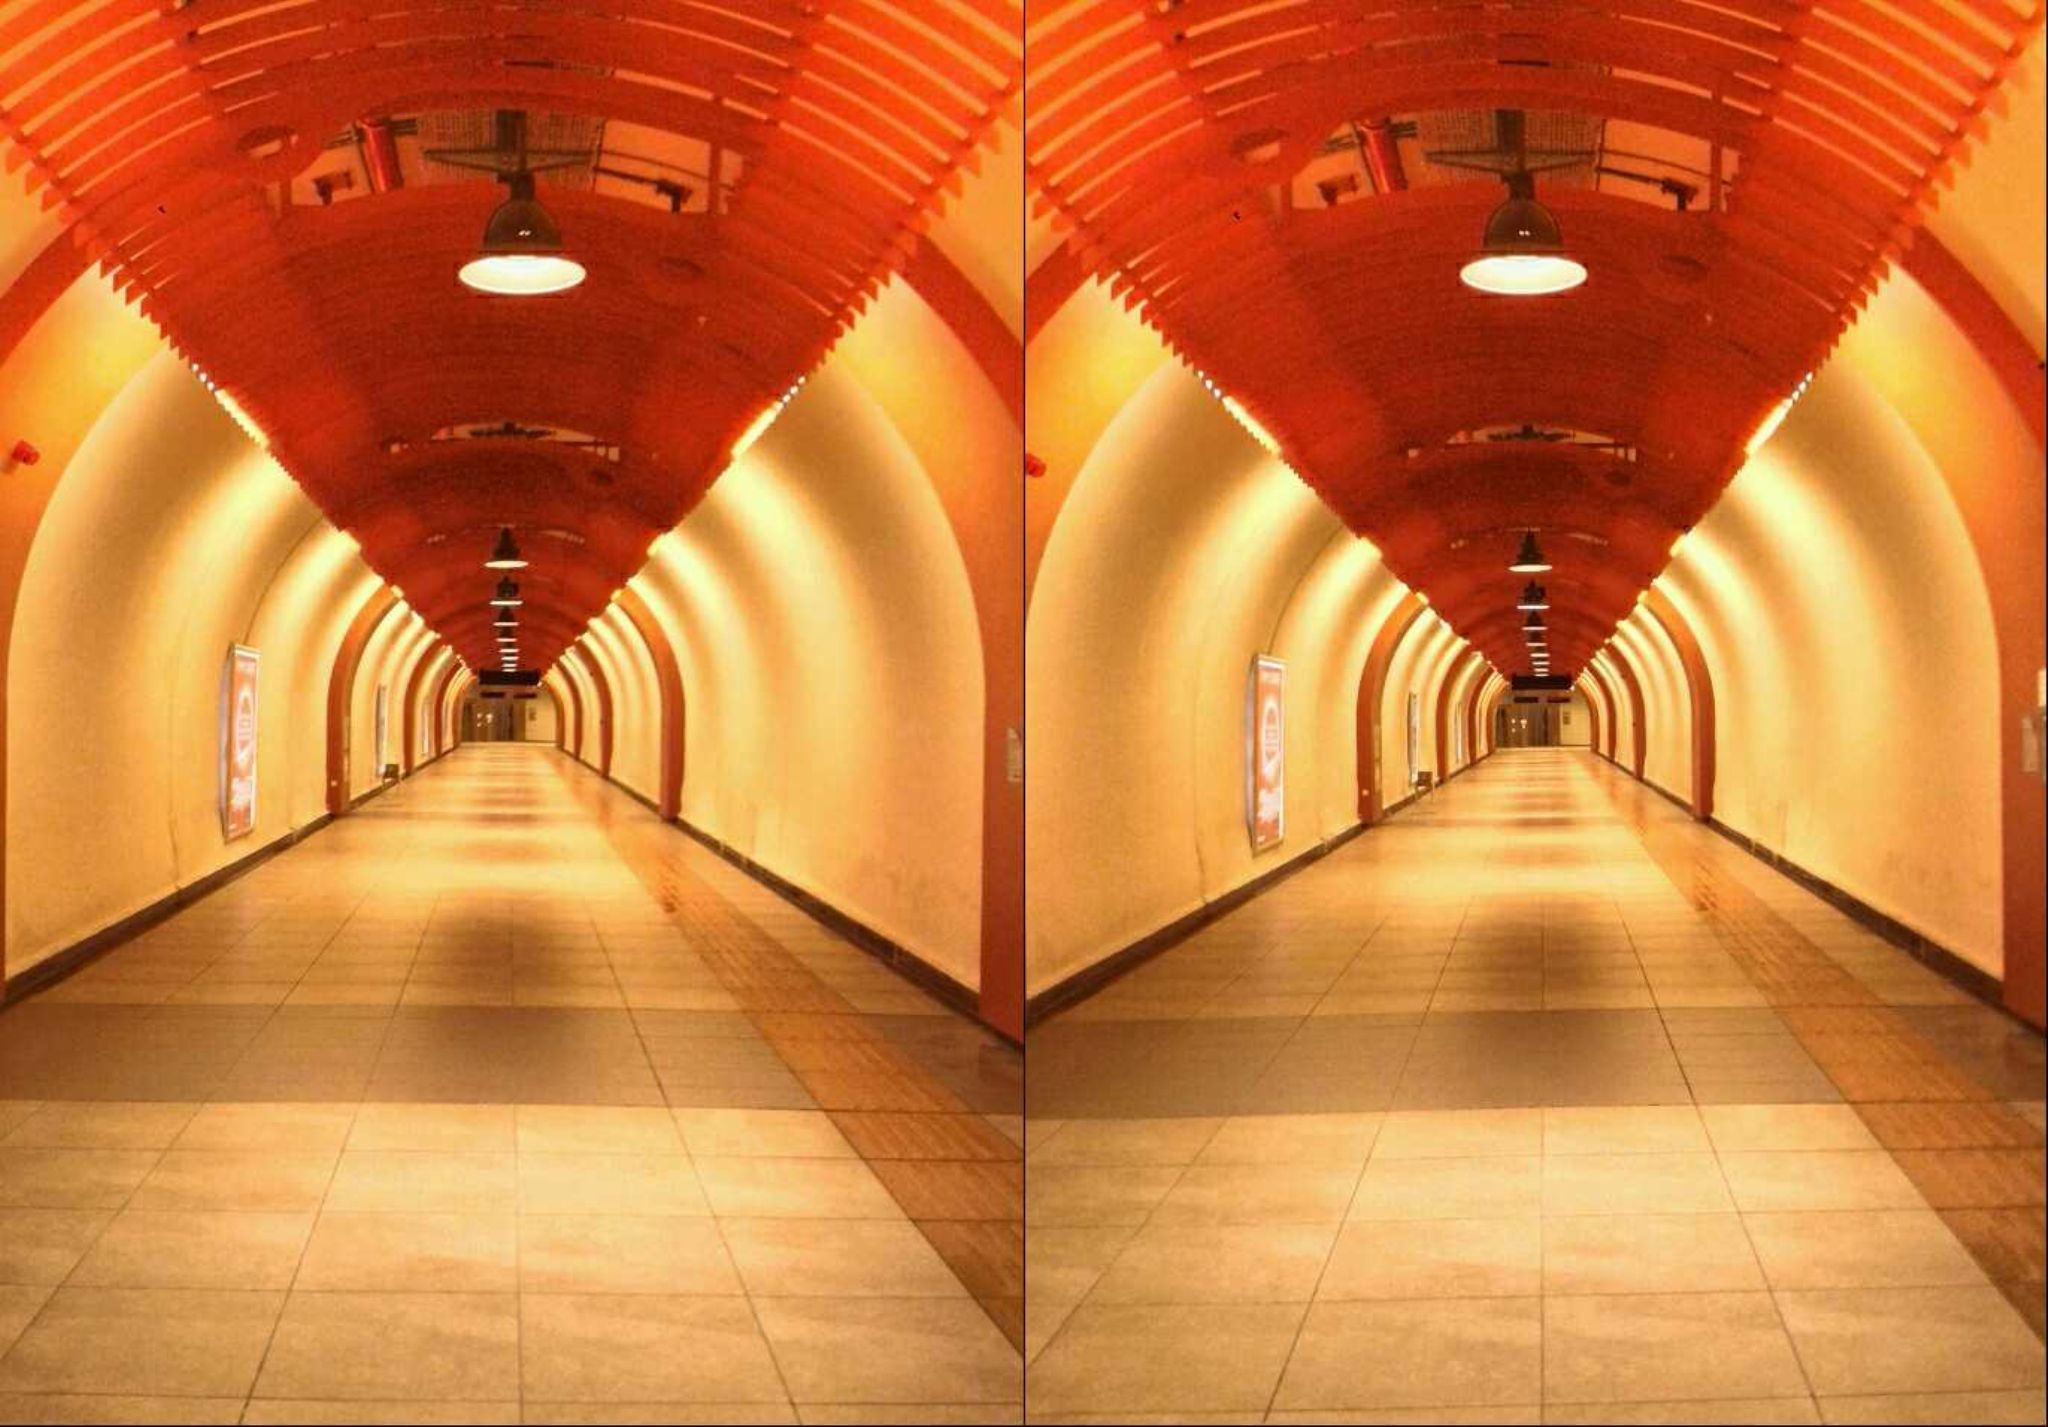 MALTEPE METRO STATION - MALTEPE - ASIAN SIDE OF ISTANBUL by Istanbul 3D Photography